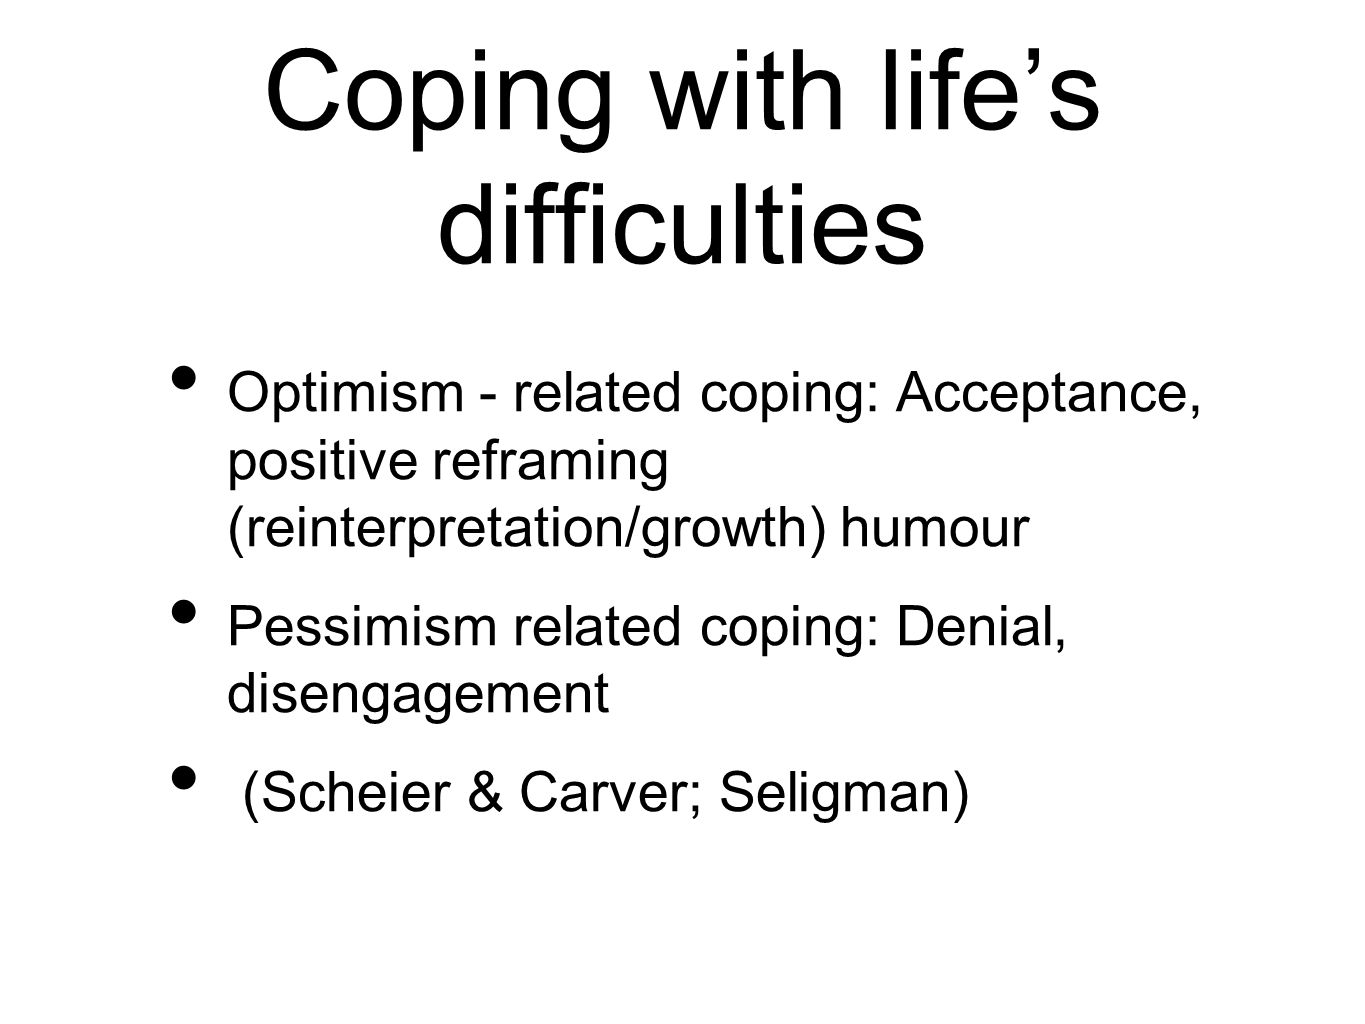 Coping with life's difficulties Optimism - related coping: Acceptance, positive reframing (reinterpretation/growth) humour Pessimism related coping: Denial, disengagement (Scheier & Carver; Seligman)